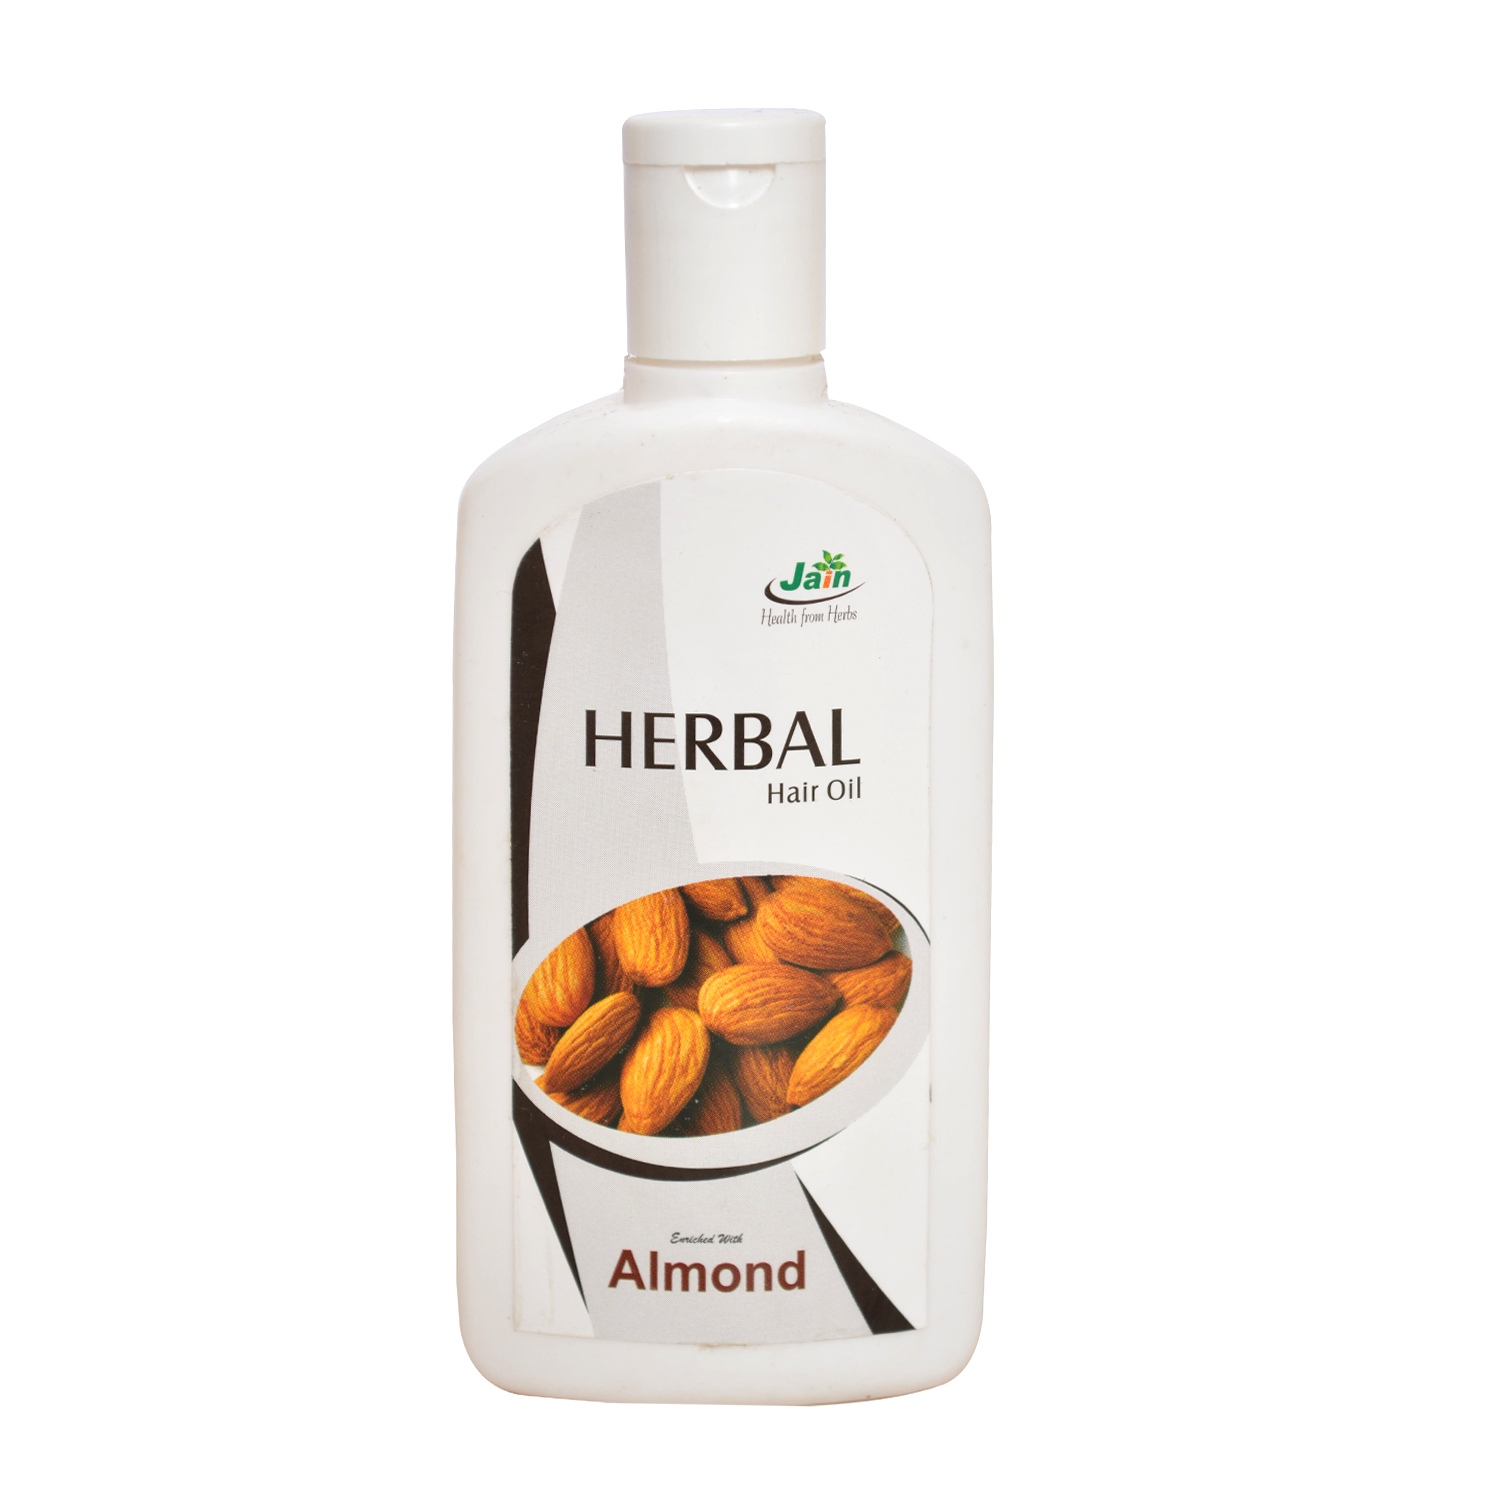 Herbal Hair Oil (Almond)